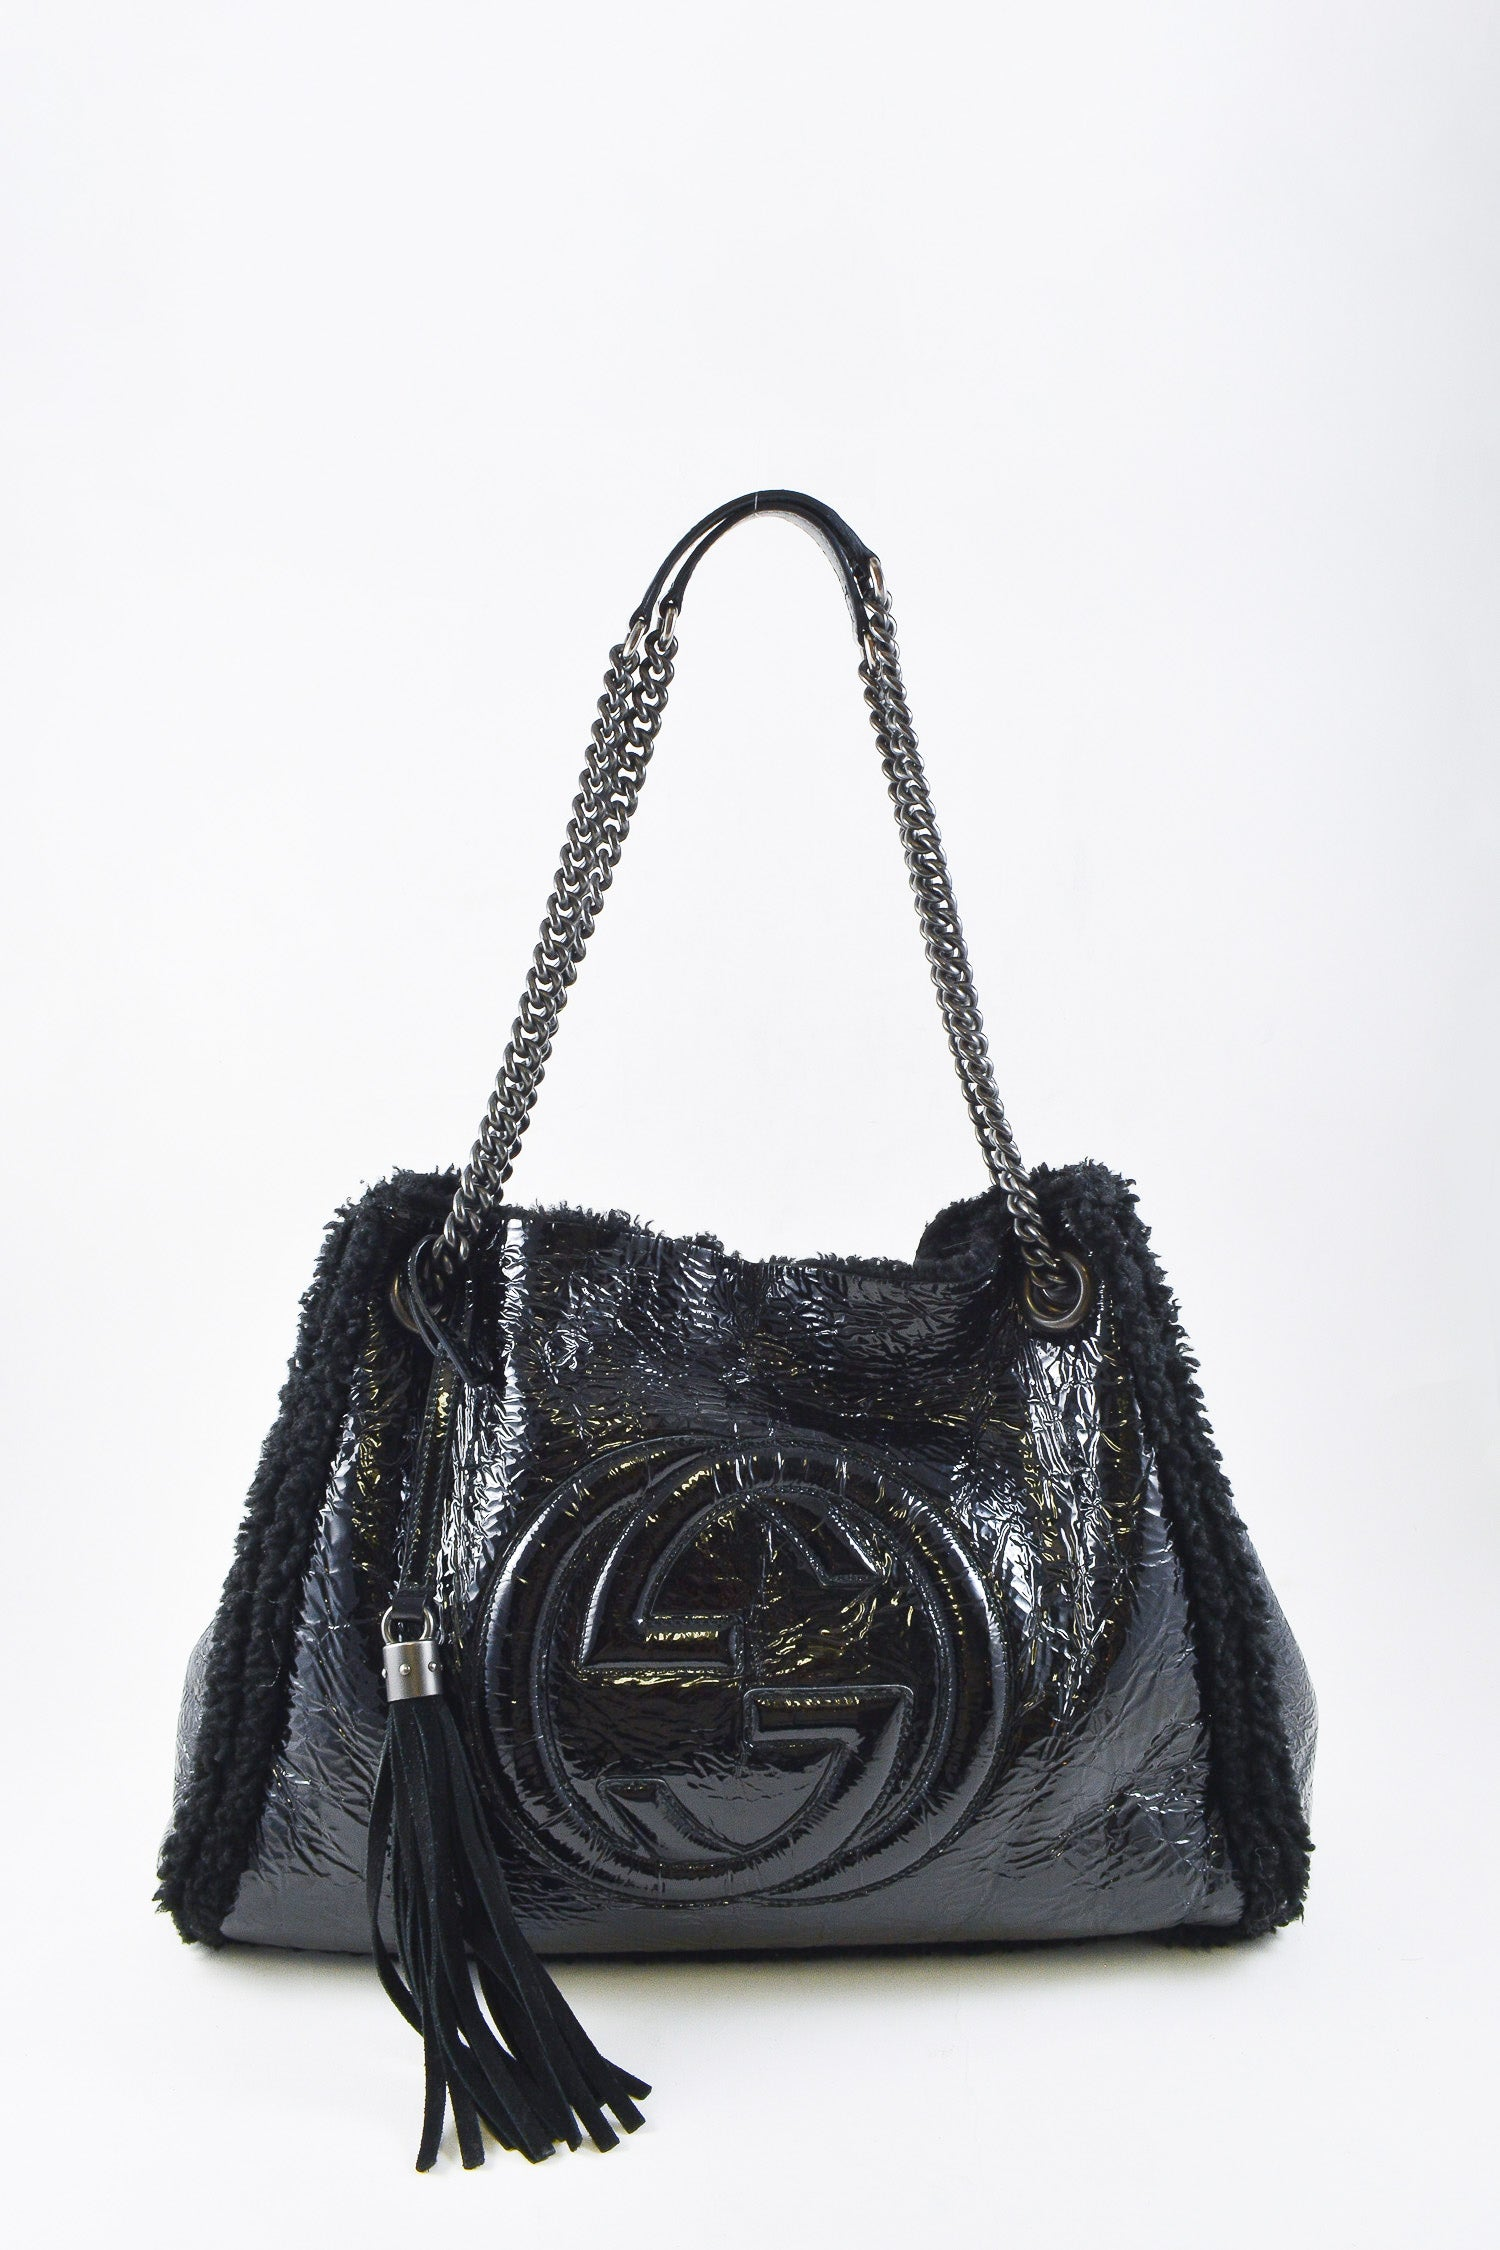 02532ff2 Gucci Medium Black Sherpa Soho Chain Shoulder Bag - Mine & Yours -  Vancouver Luxury Fashion Resale + Consignment